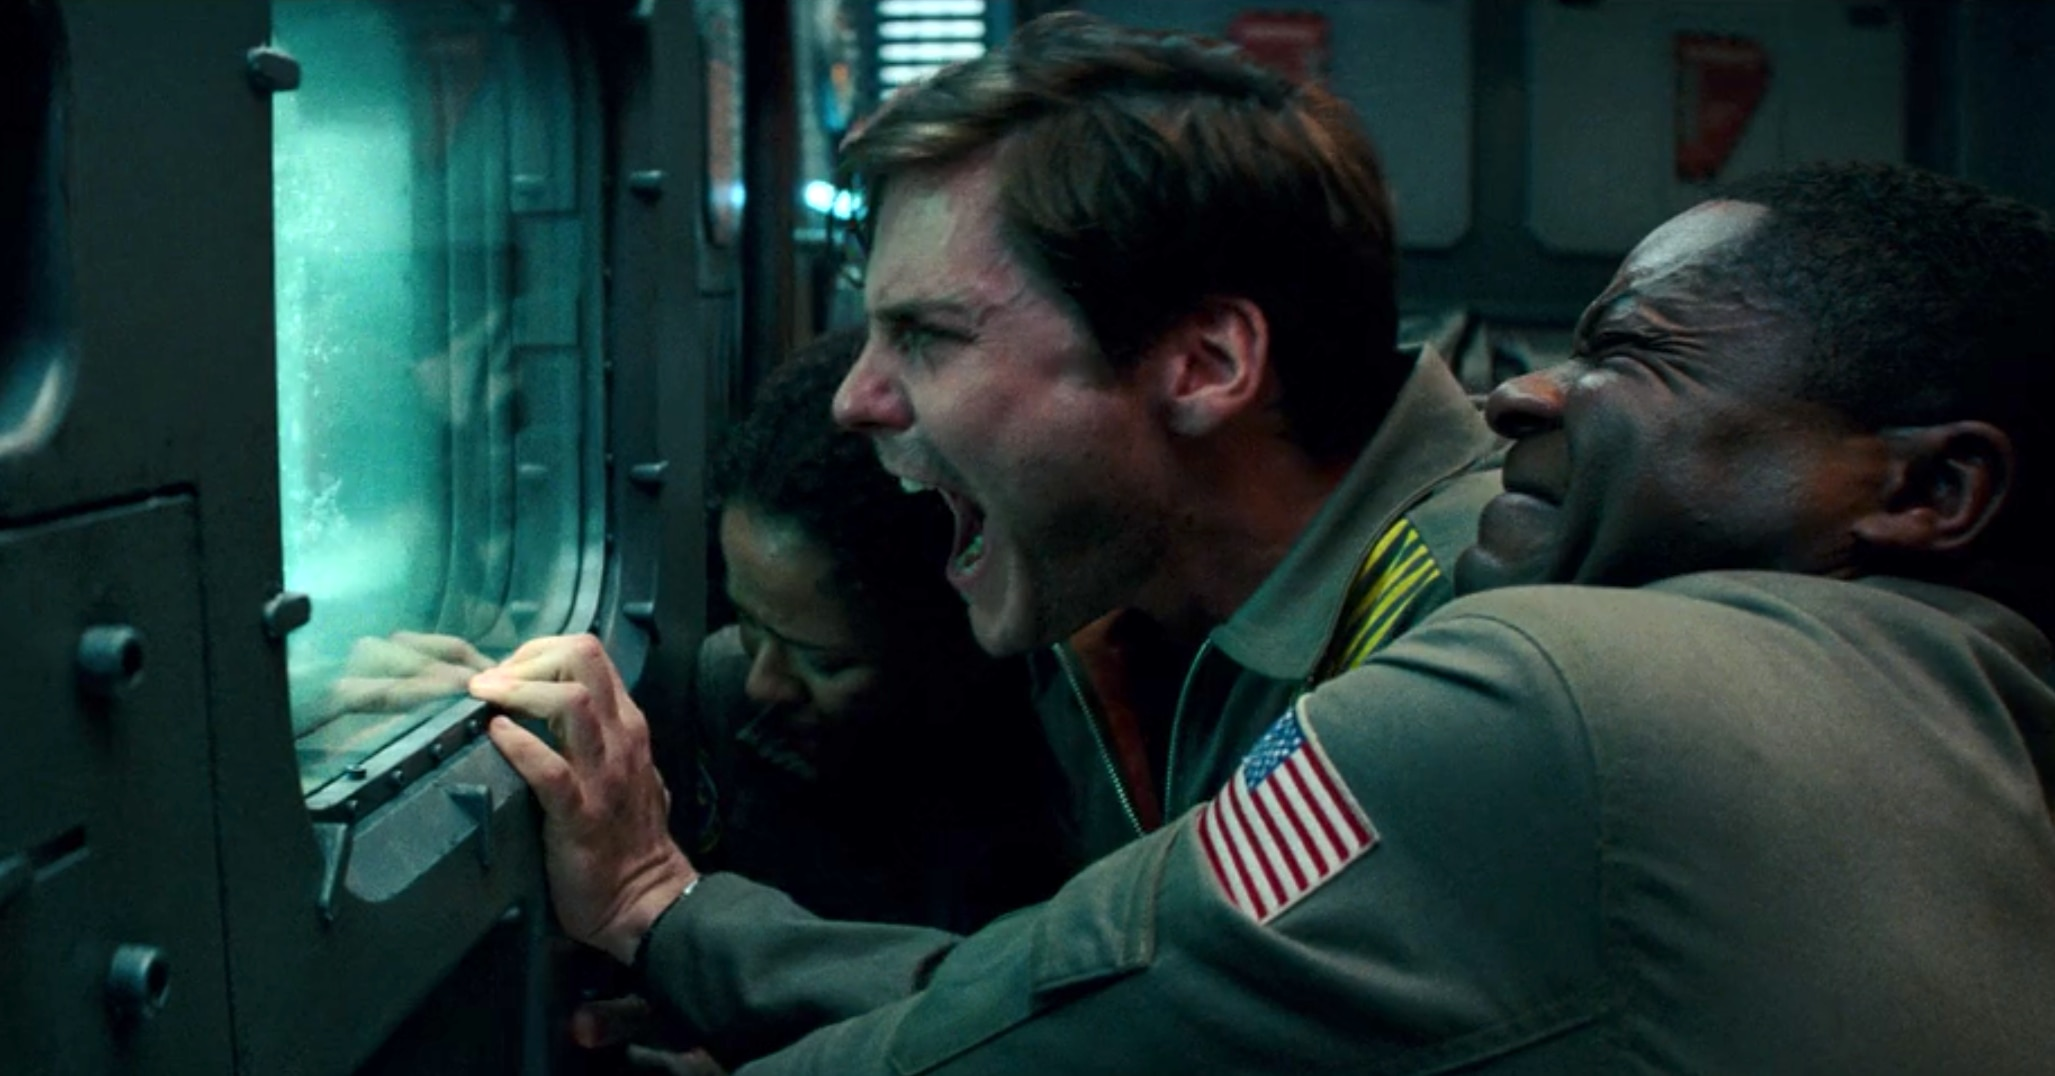 'Cloverfield Paradox' Scared Up A Shocking Amount Of Viewers